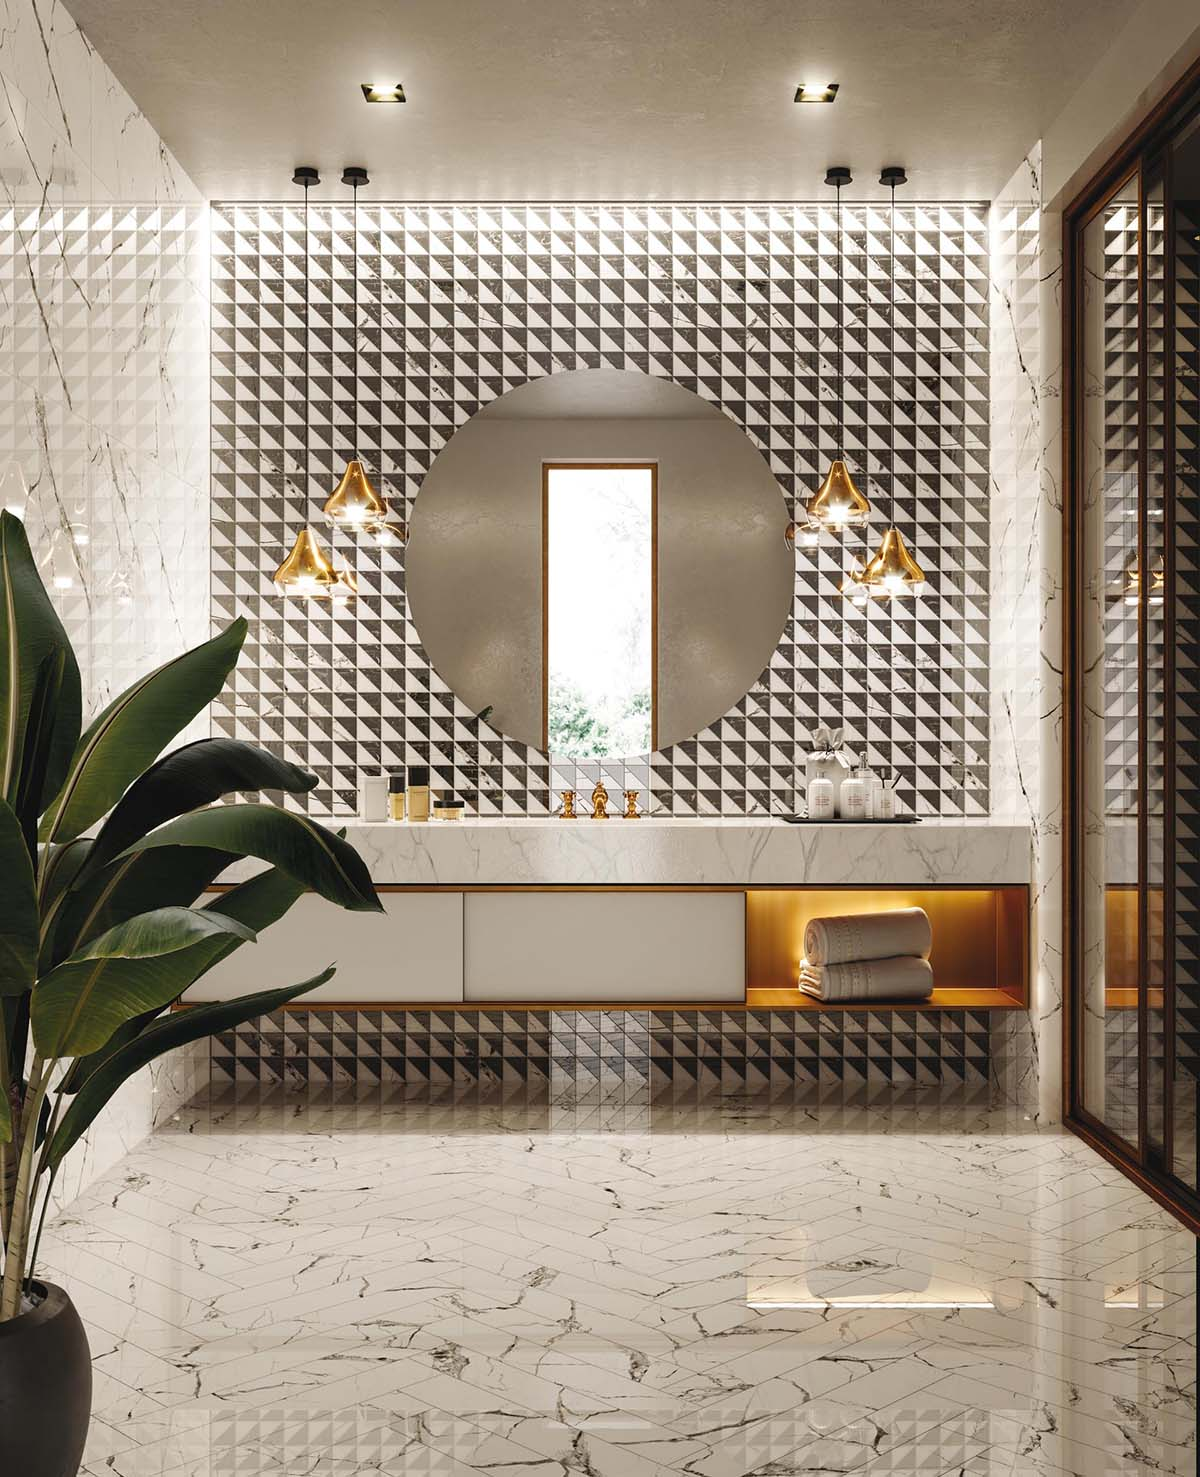 Characterized by bold geometric shapes and decadent details, deco tiles feature chevron patterns, arches of contrasting marble, and scallops full of color.